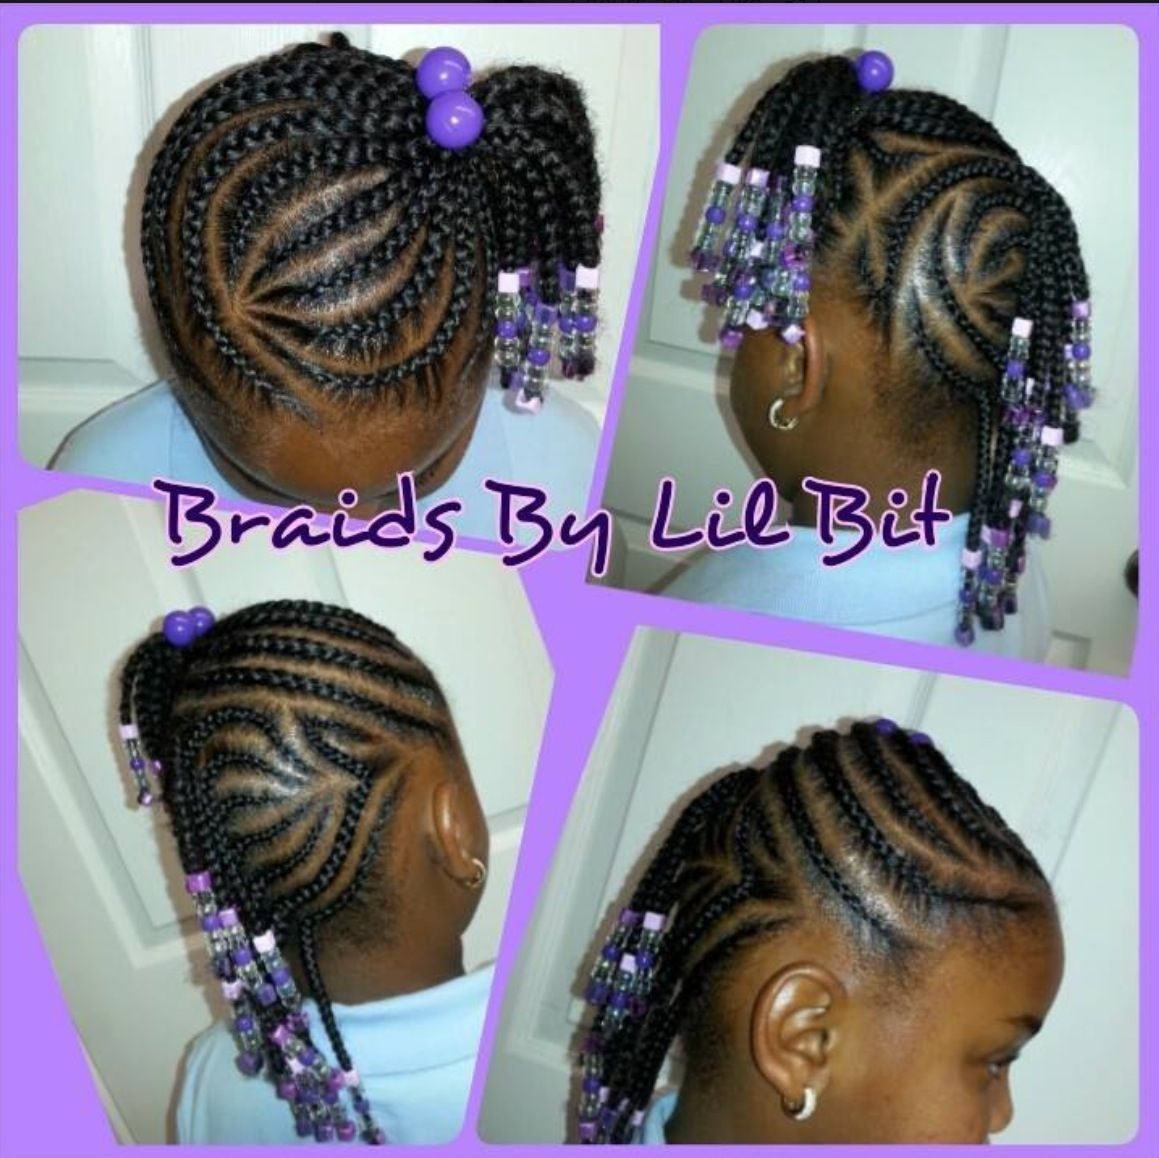 Awe Inspiring 1000 Images About Niyah On Pinterest Braids And Beads Cornrows Hairstyles For Men Maxibearus